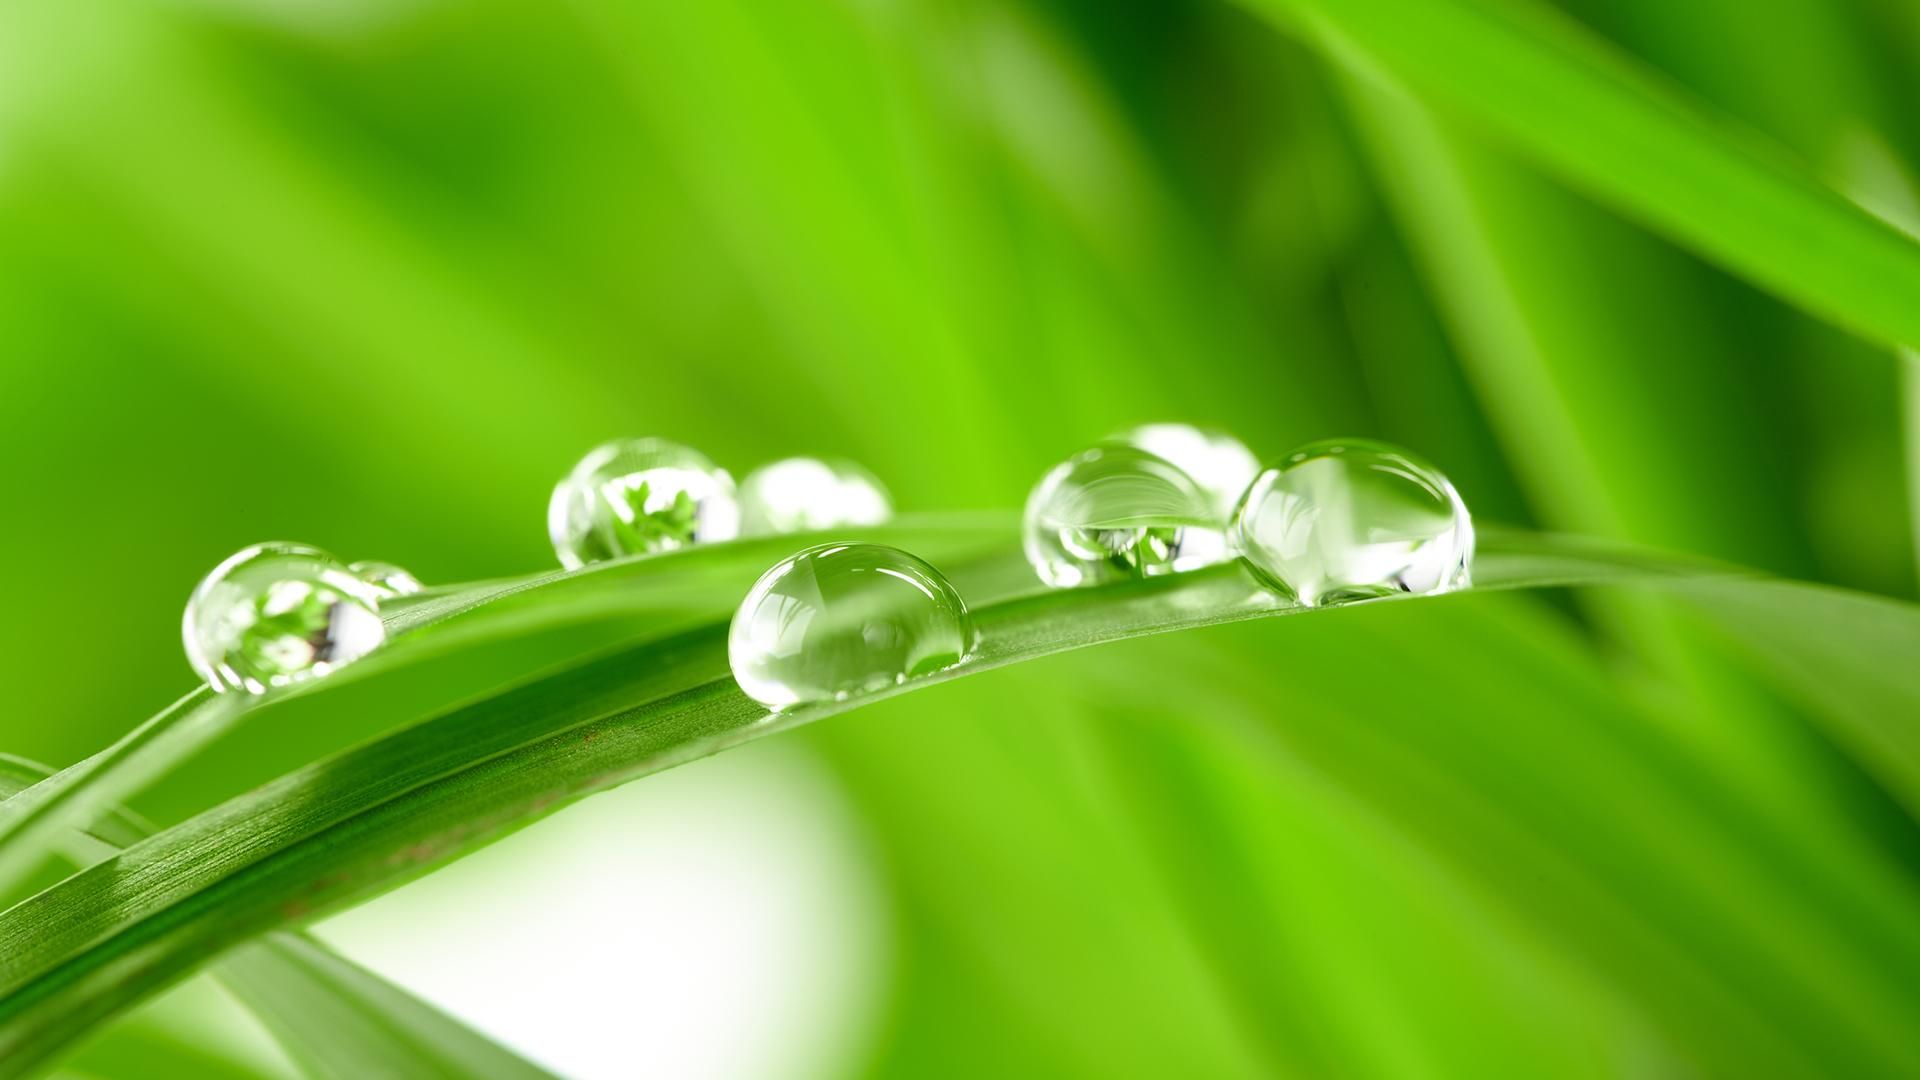 Abstract Water Drops Prev Diamond Like On Leaves Next 104706 Wallpaper wallpaper